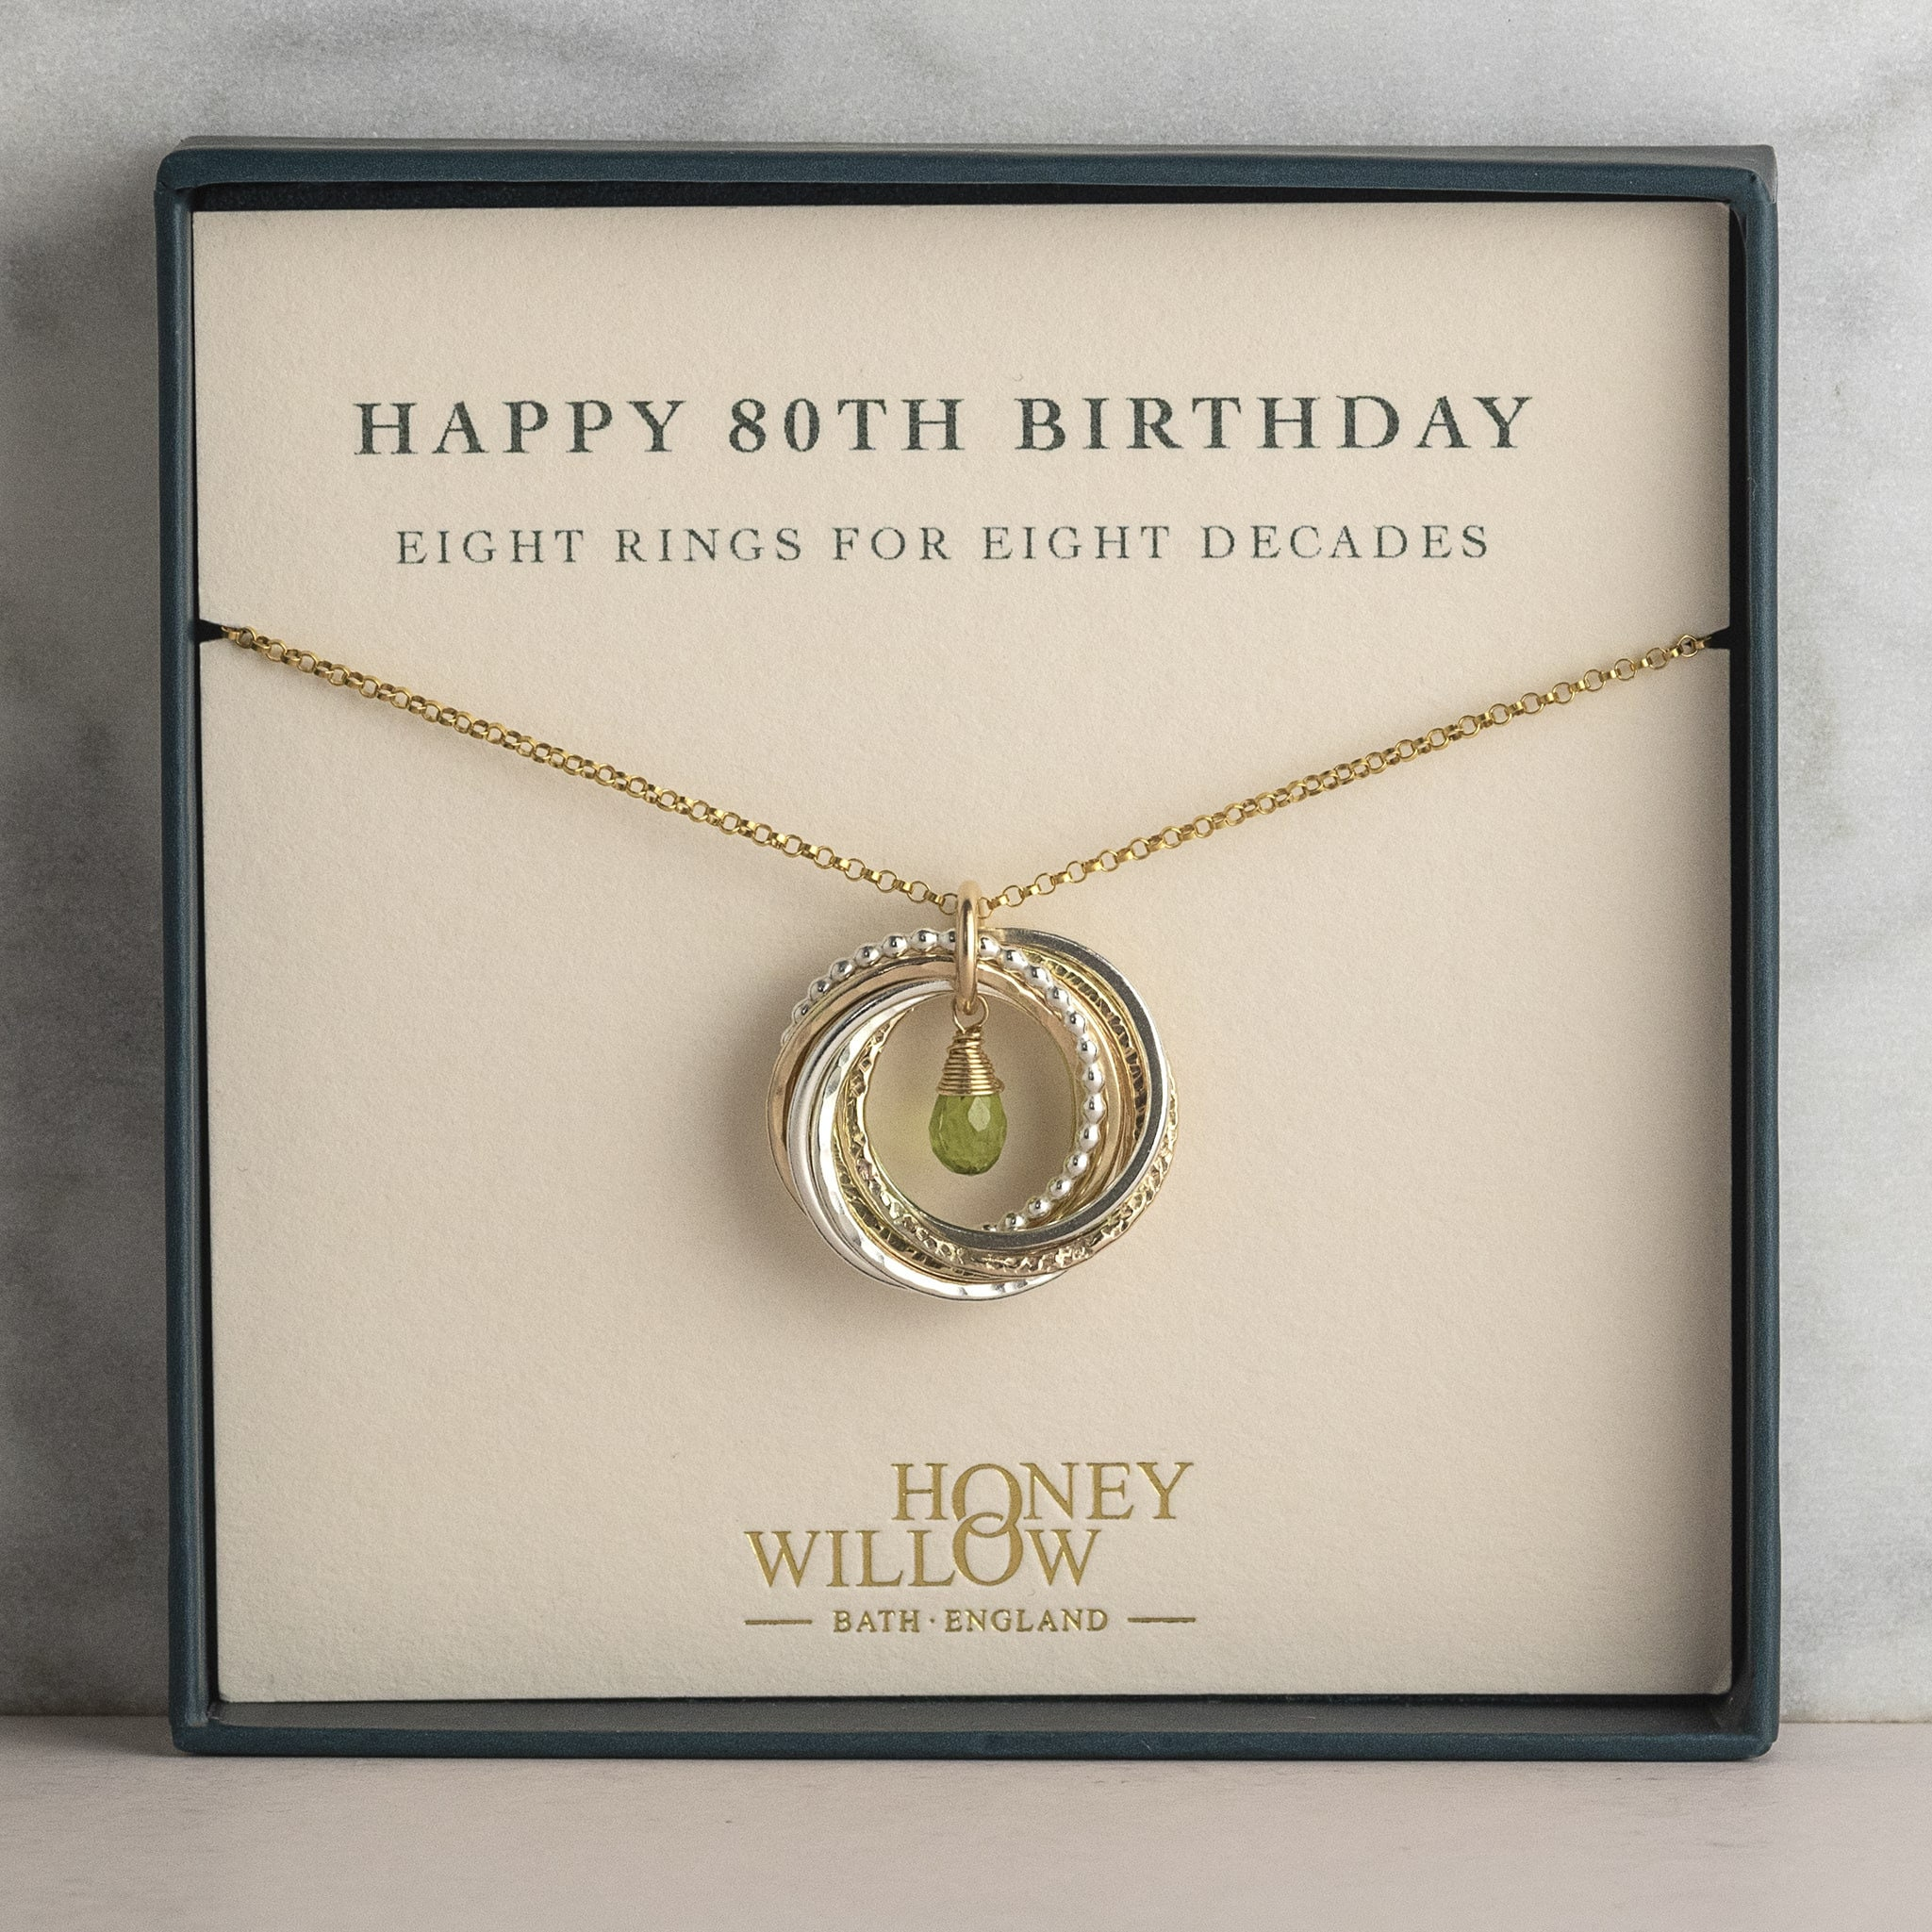 Gift for Her Party Gift 80th Birthday Necklace Milestone Birthday Jewelry Gift for Her 80 Birthday Gift Happy Birthday